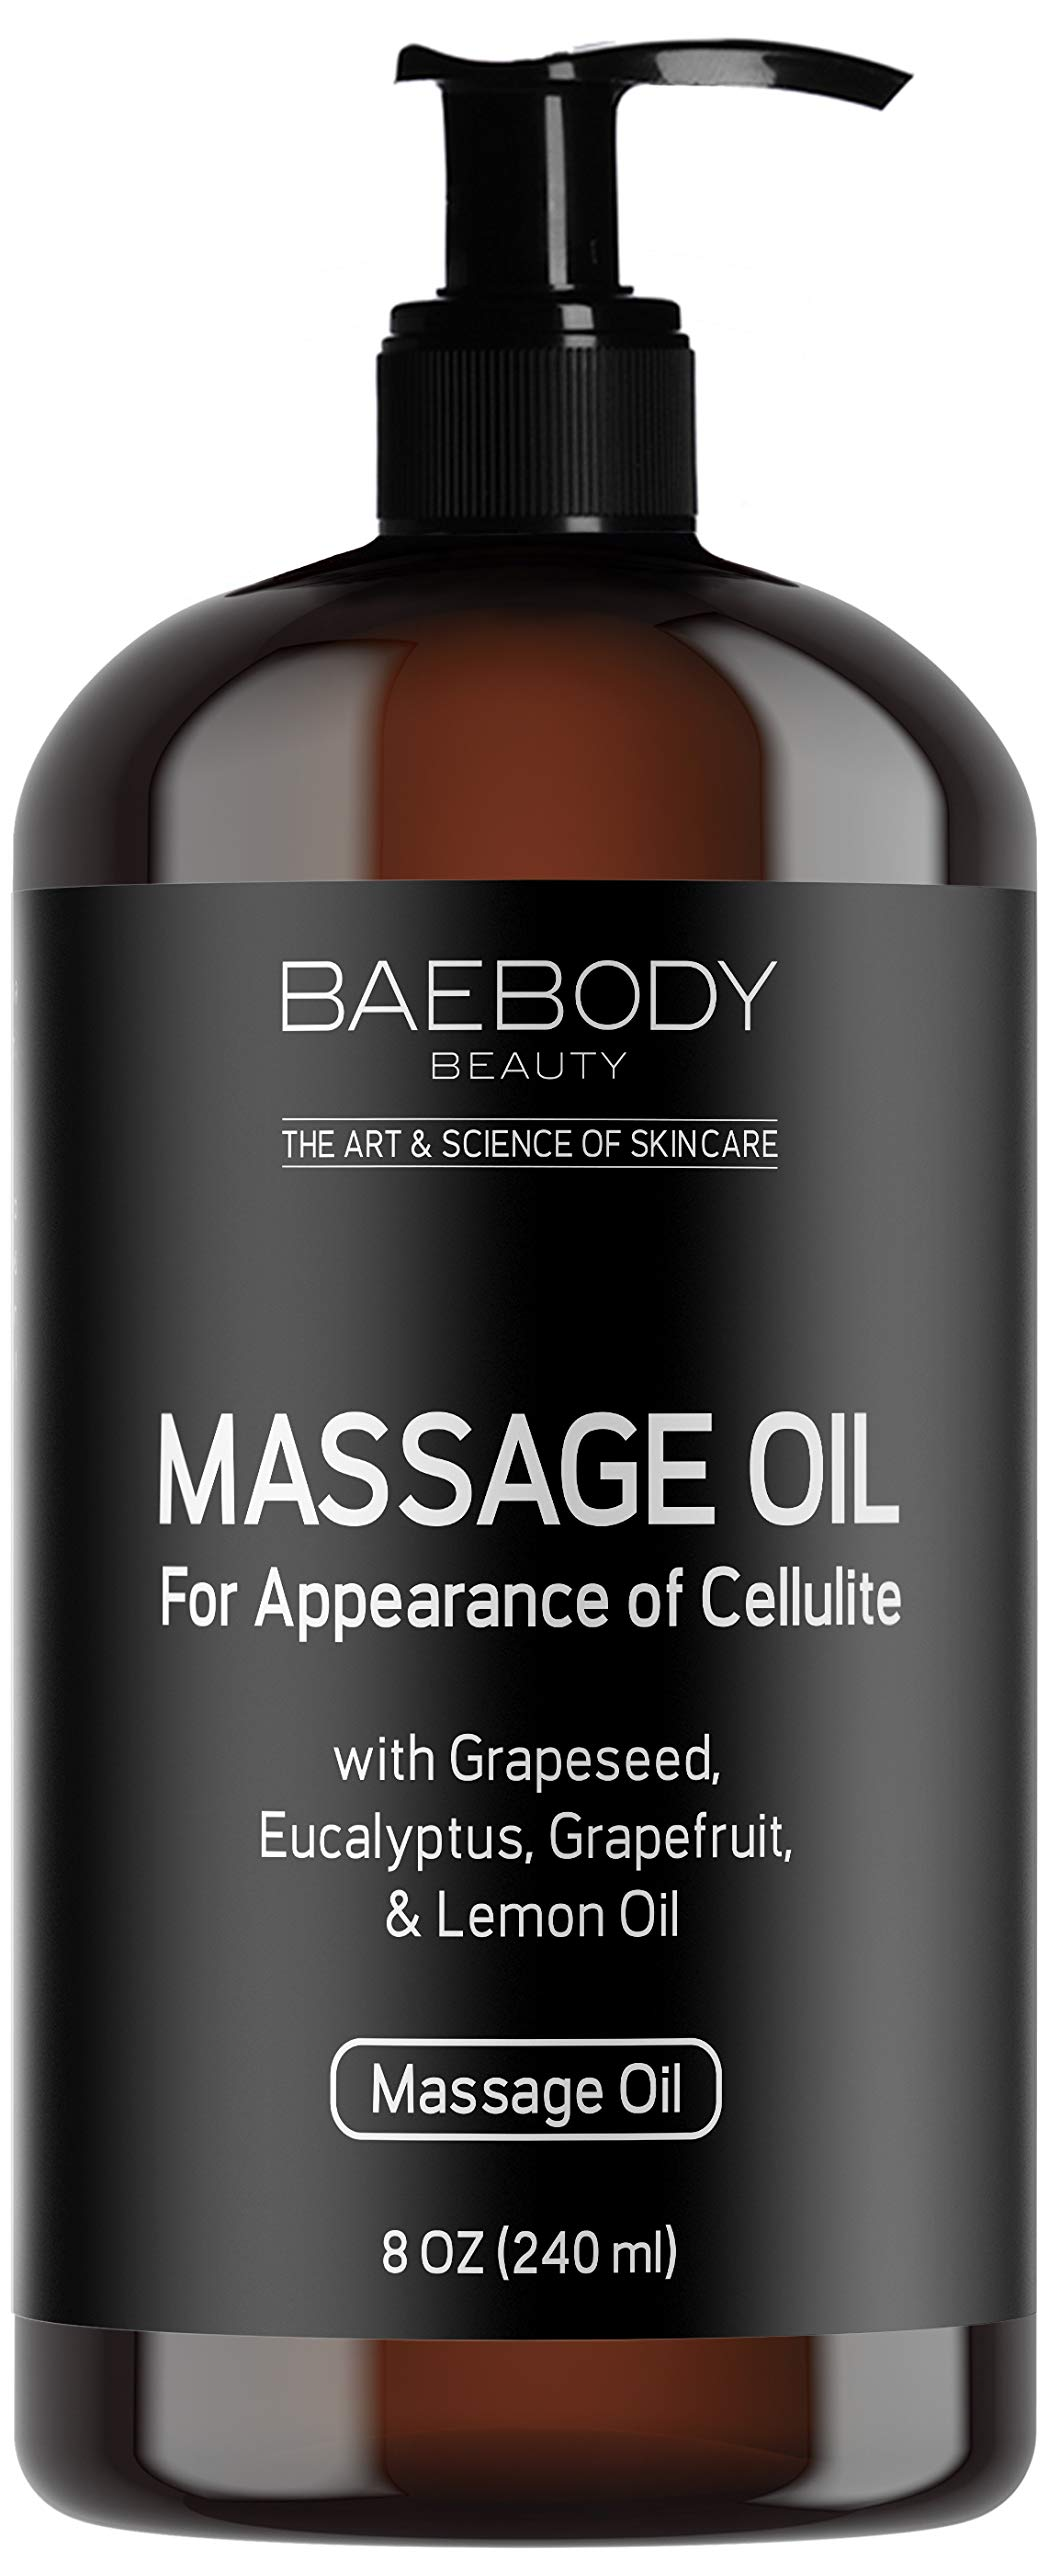 Baebody Massage Oil - Fight the Appearance of Cellulite - with Grapeseed Oil, Eucalyptus Oil, Lemon Oil, and Grapefruit Oil, Penetrates Deeper than Cream, 8 OZ